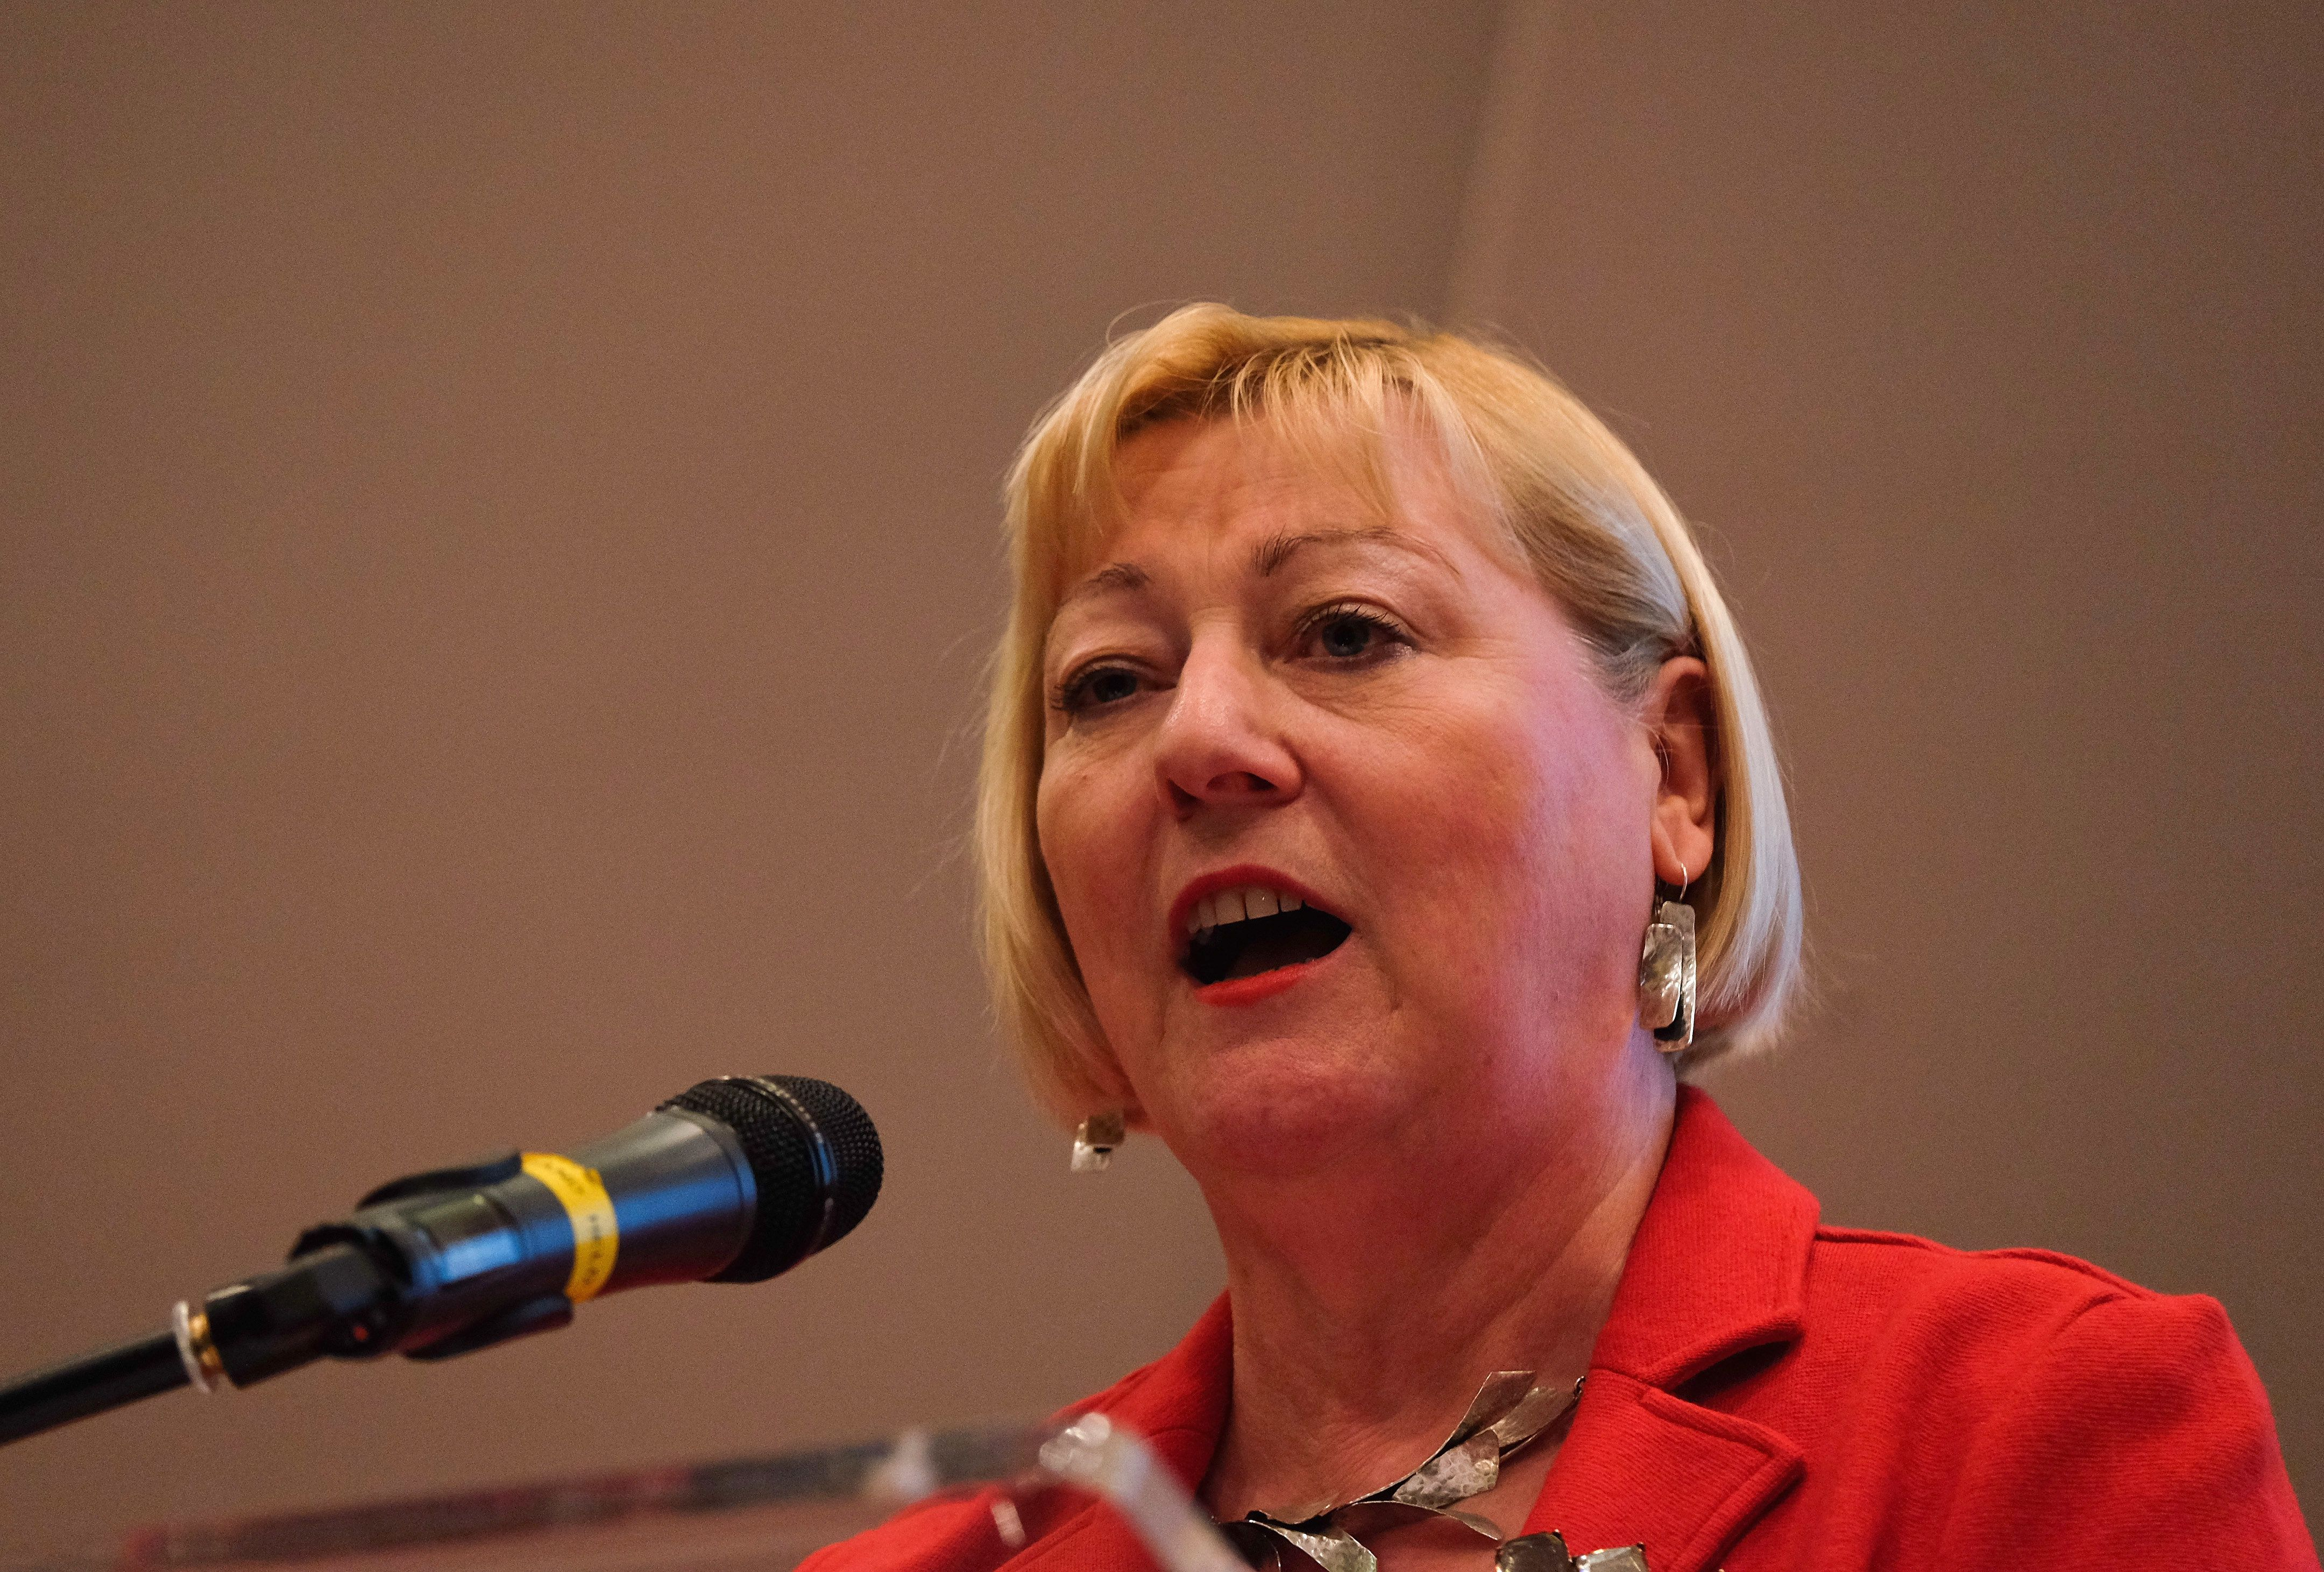 Labour shadow minister Pat Glass has said she will not stand again as an MP after receiving death